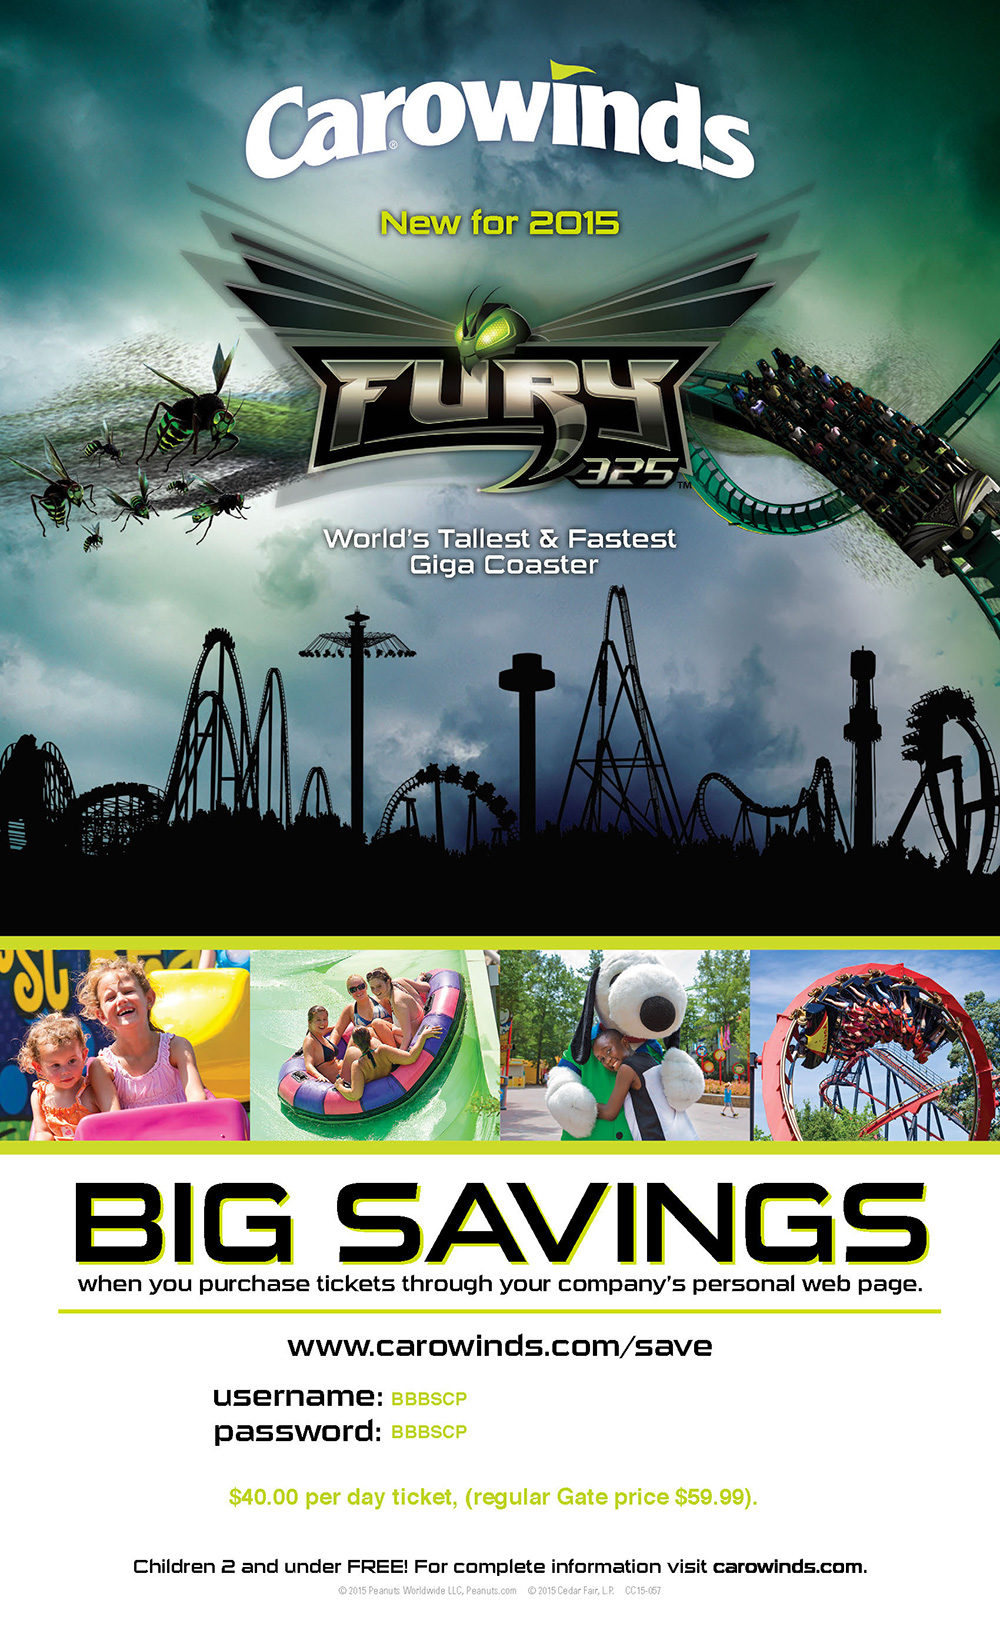 CaroWinds Coupon go to patton-outlet.tk Total 22 active patton-outlet.tk Promotion Codes & Deals are listed and the latest one is updated on December 02, ; 22 coupons and 0 deals which offer up to $45 Off and extra discount, make sure to use one of them when you're shopping for patton-outlet.tk; Dealscove promise you'll get the best price on.